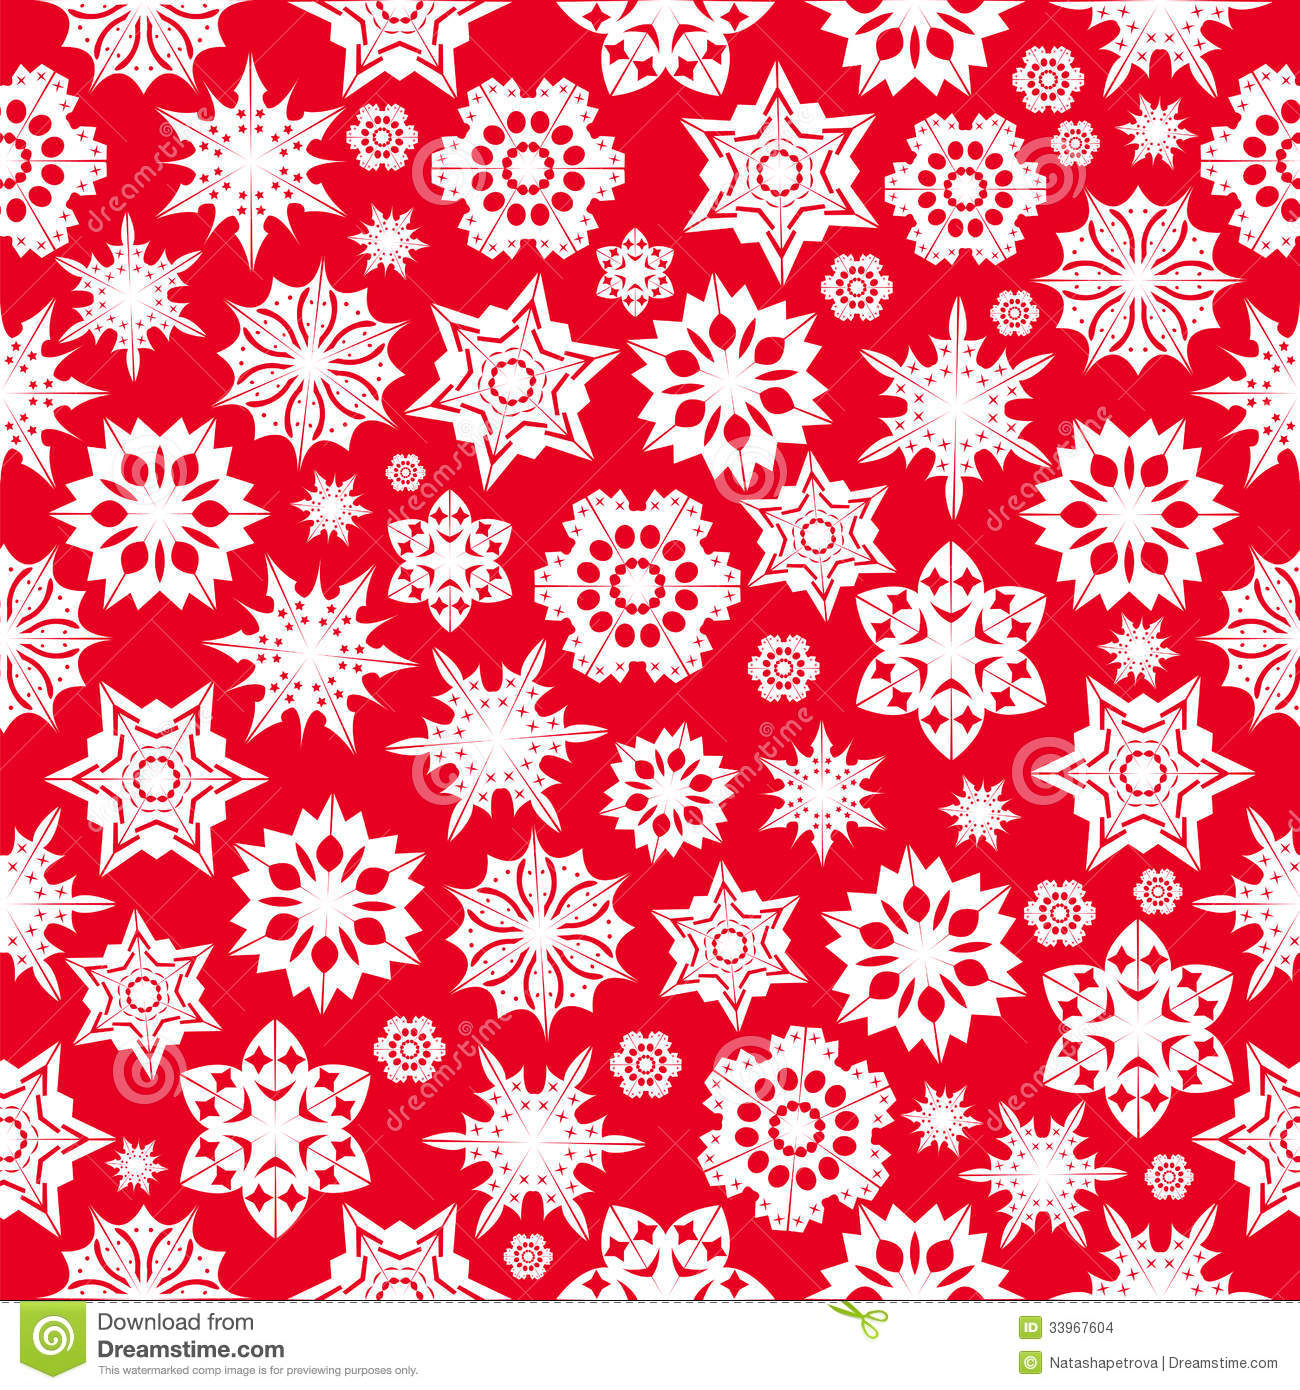 ... pattern with red snowflakes on a white background.winter background